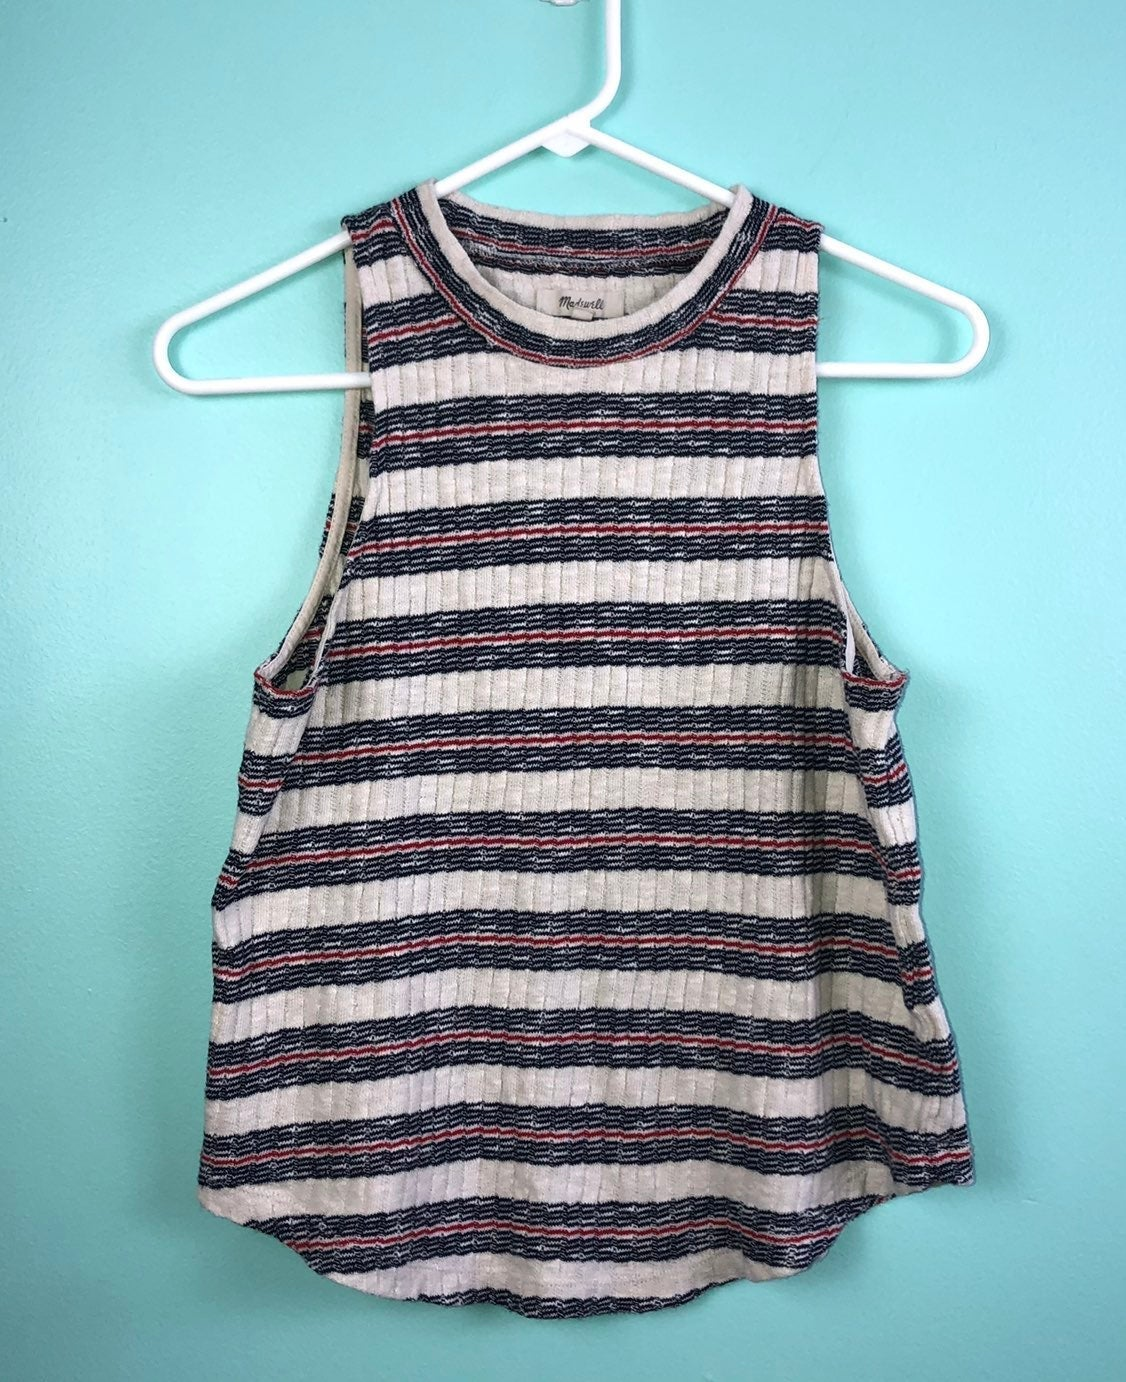 Madewell sleeveless Tank Top